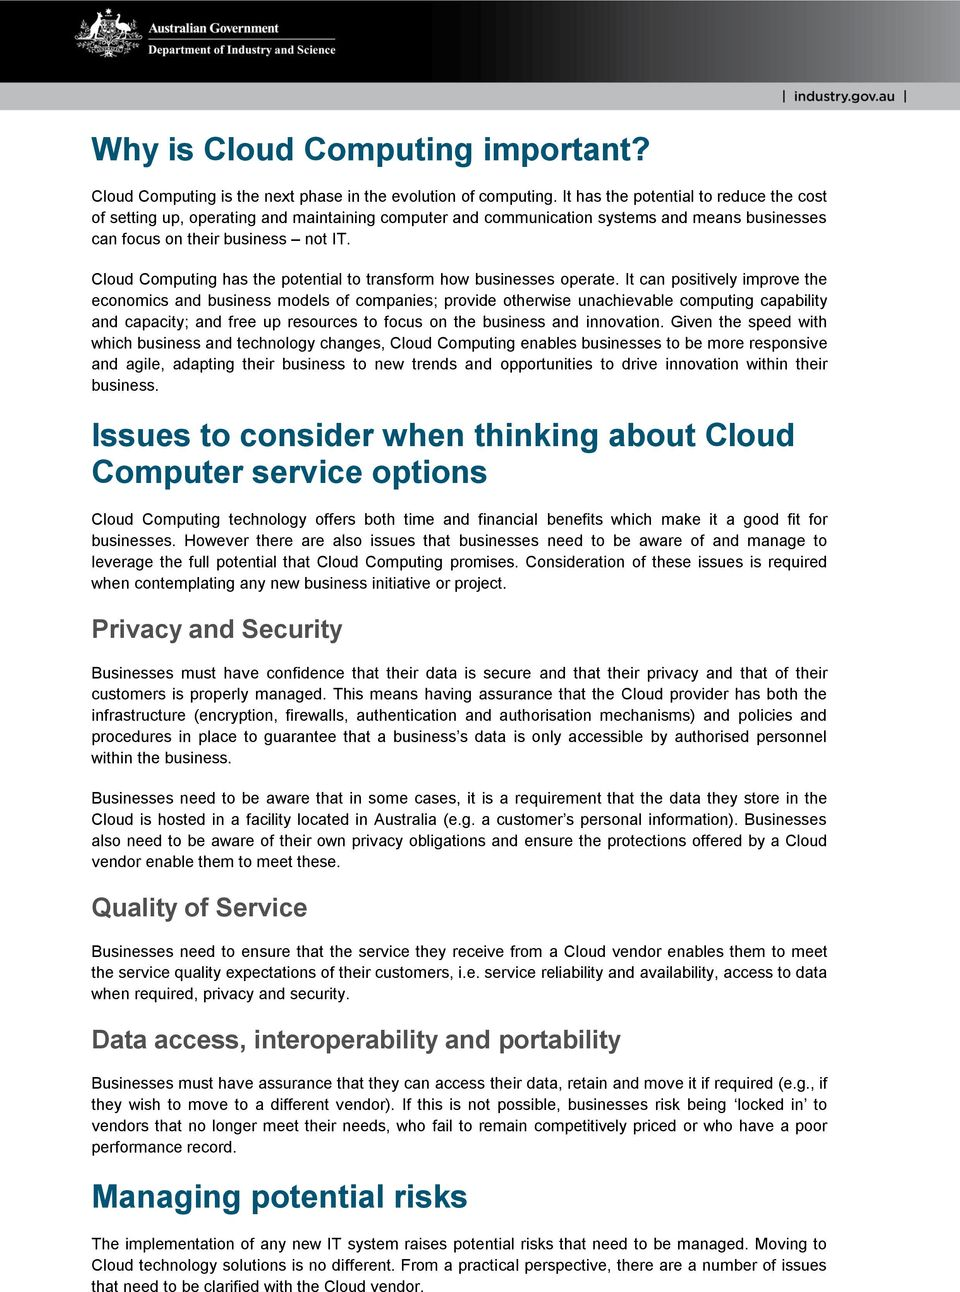 Cloud Computing has the potential to transform how businesses operate.